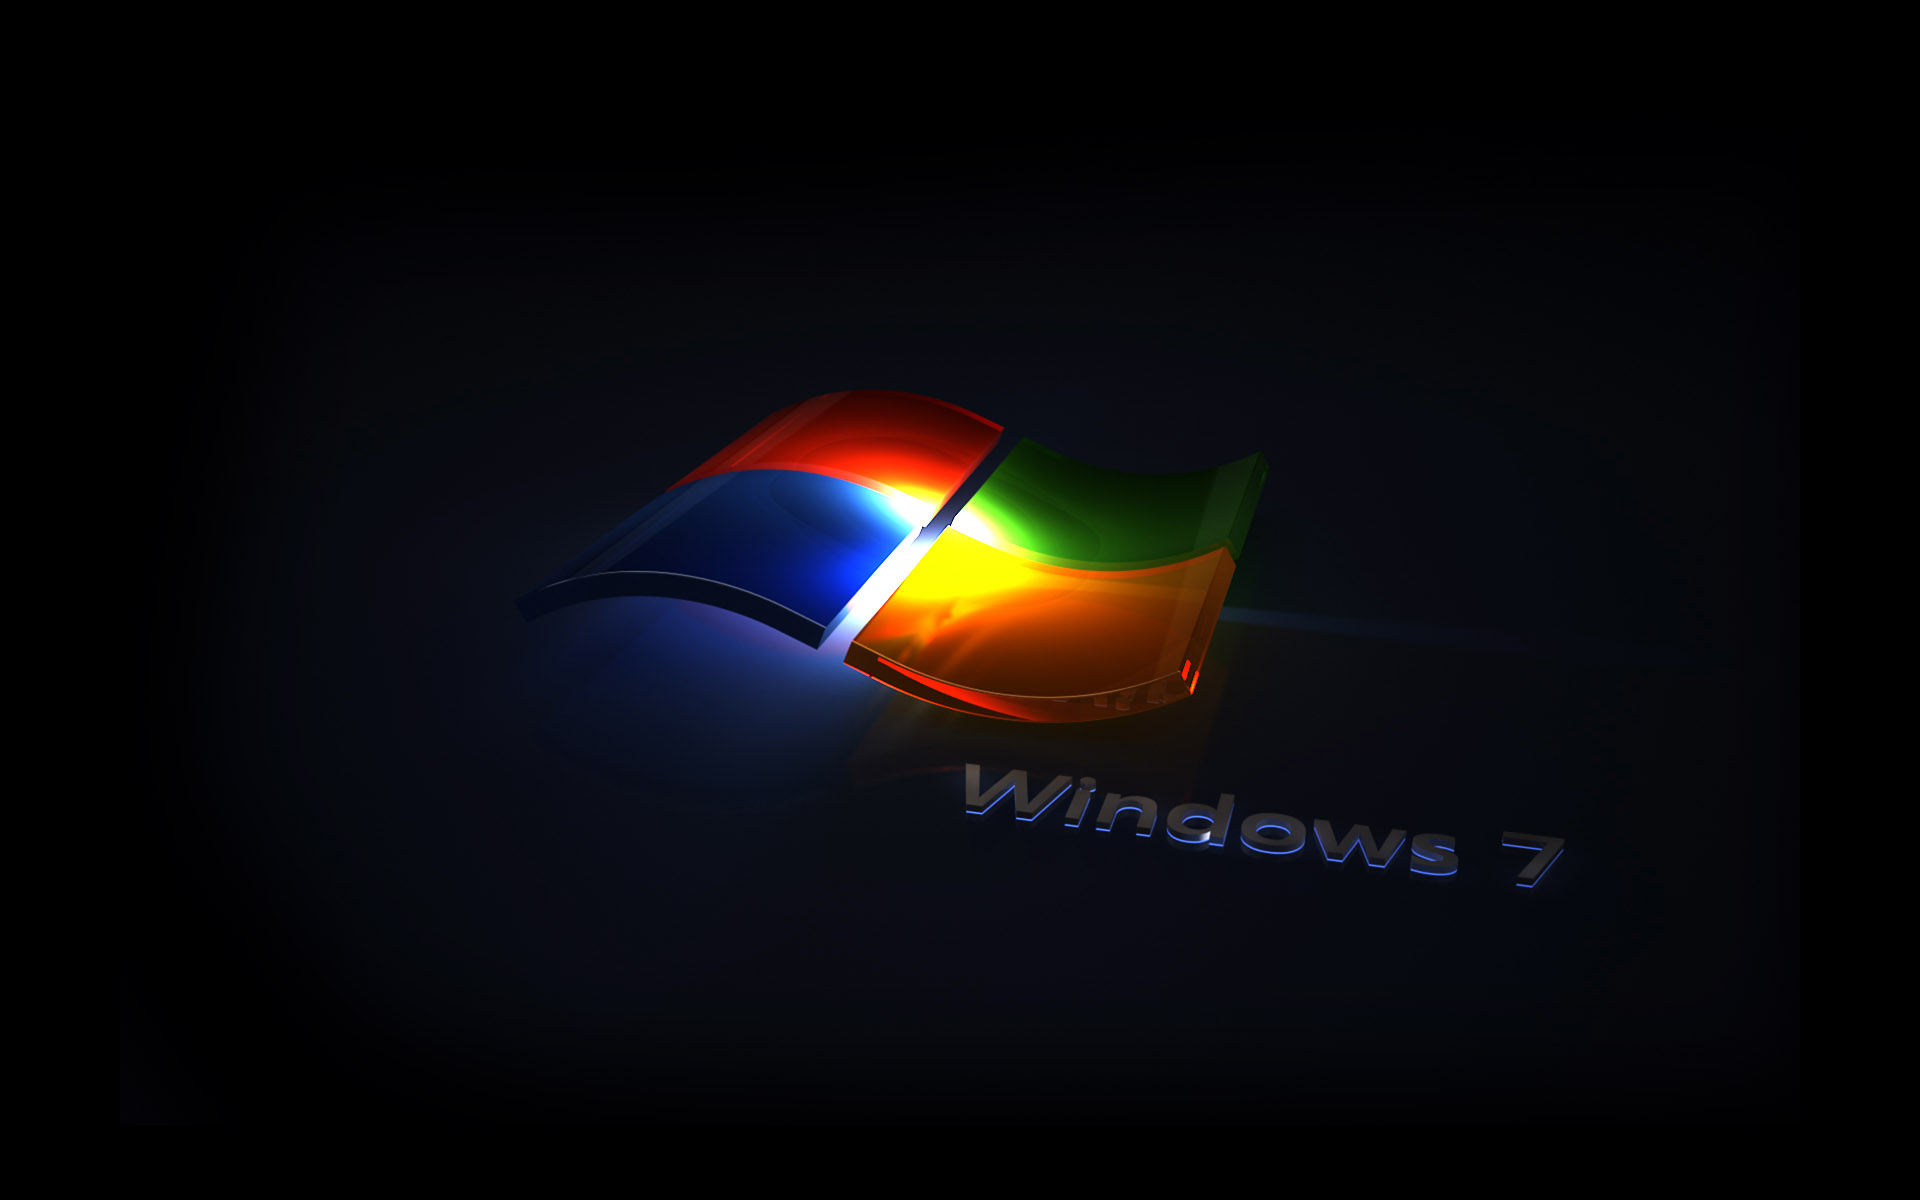 windows 7 ultimate wallpapers free download - sf wallpaper